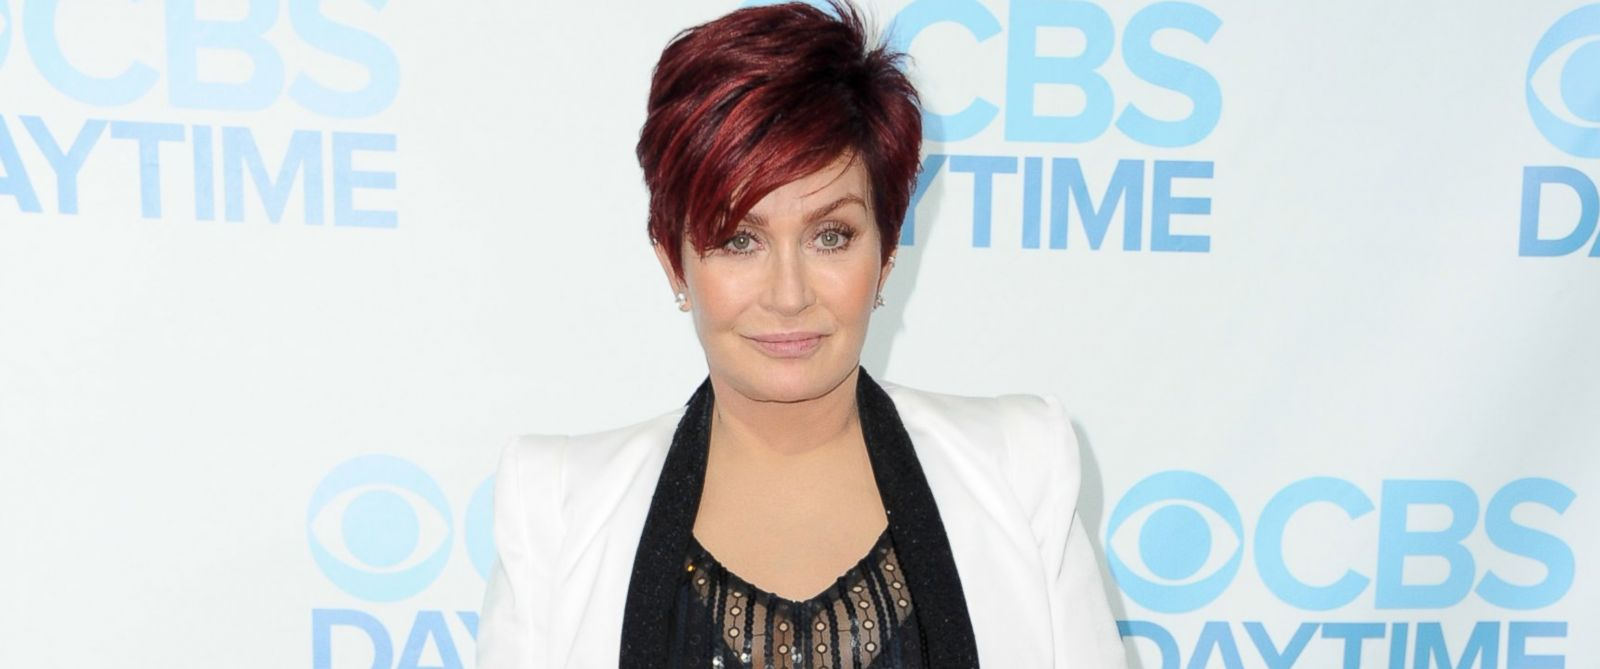 PHOTO: Sharon Osbourne attends the 41st Annual Daytime Emmy Awards CBS After Party at The Beverly Hilton Hotel, June 22, 2014, in Beverly Hills, Calif.